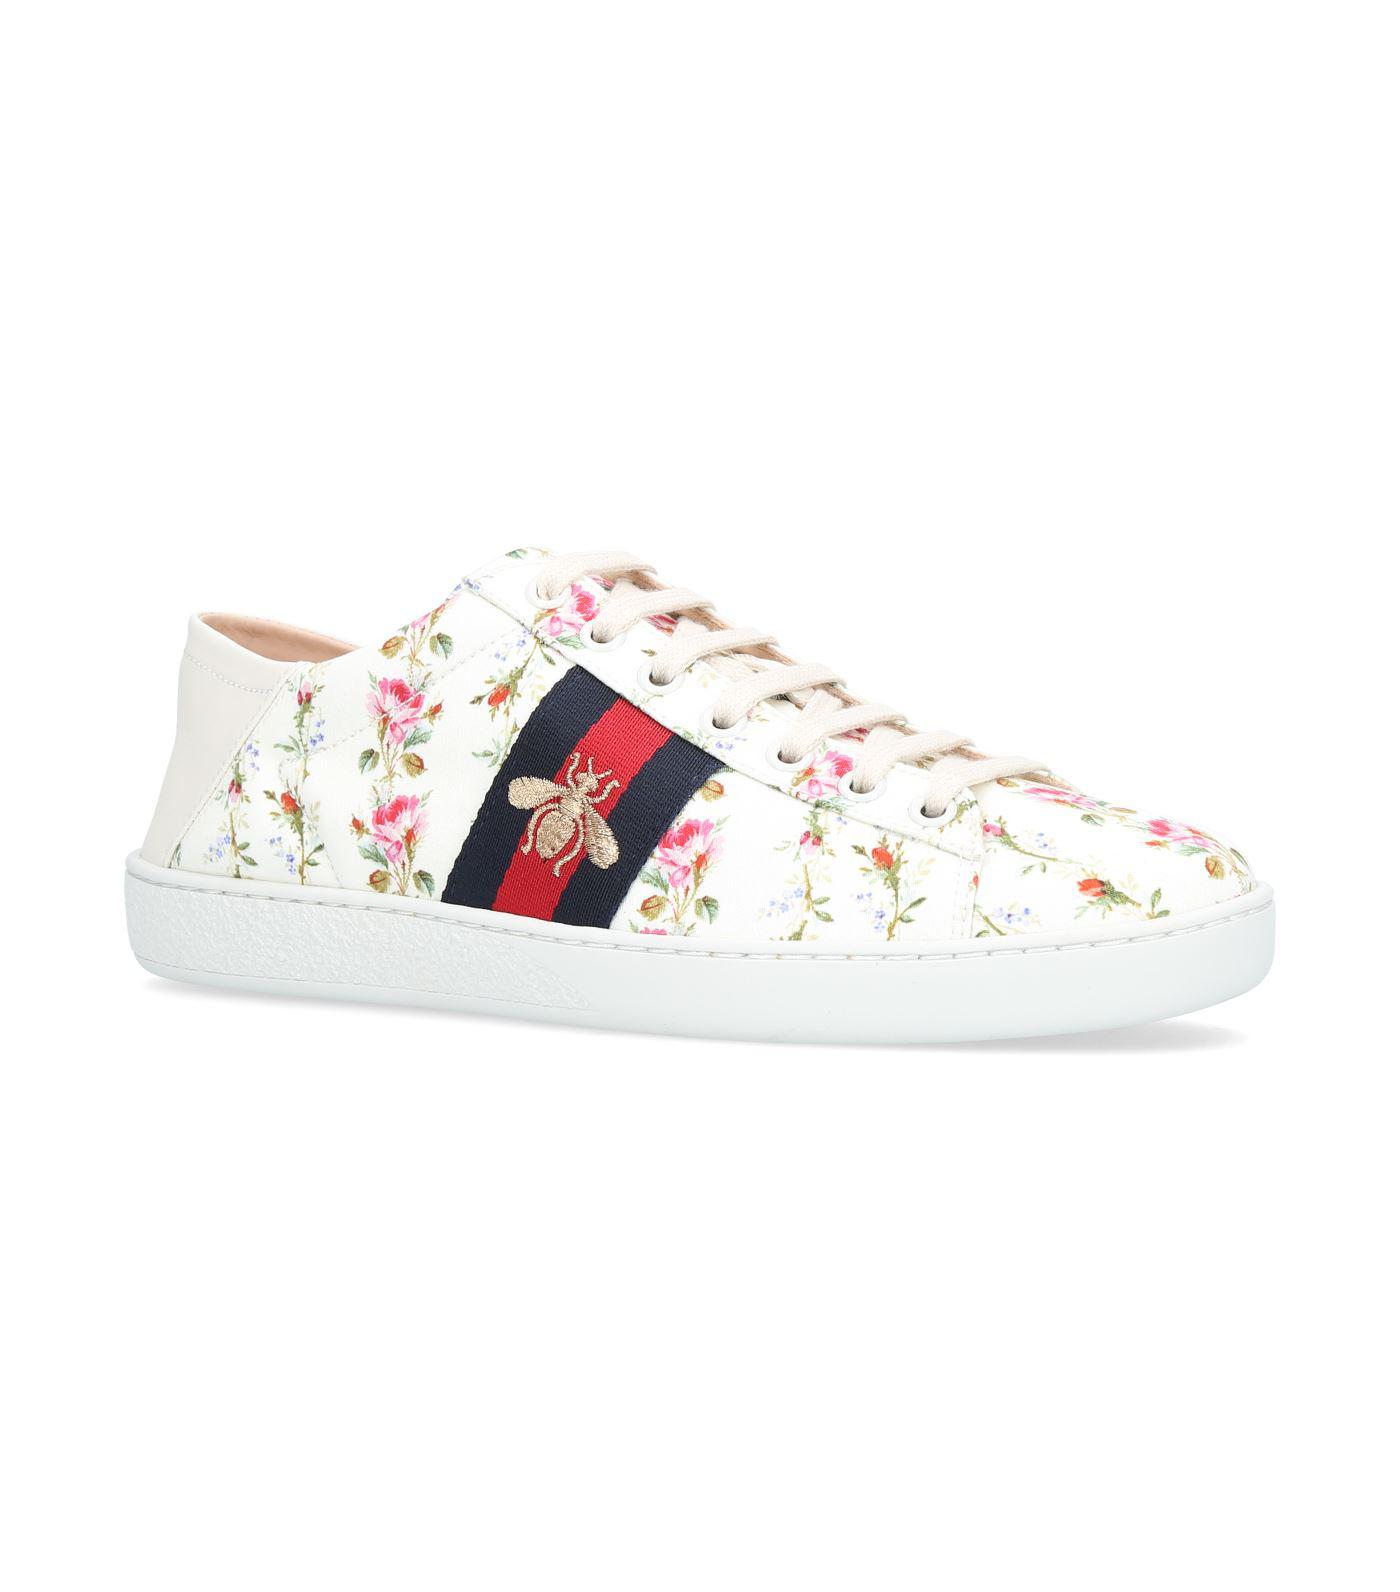 f27cb4d2d43 Lyst - Gucci Ace Rose Print Low-top Sneakers in White